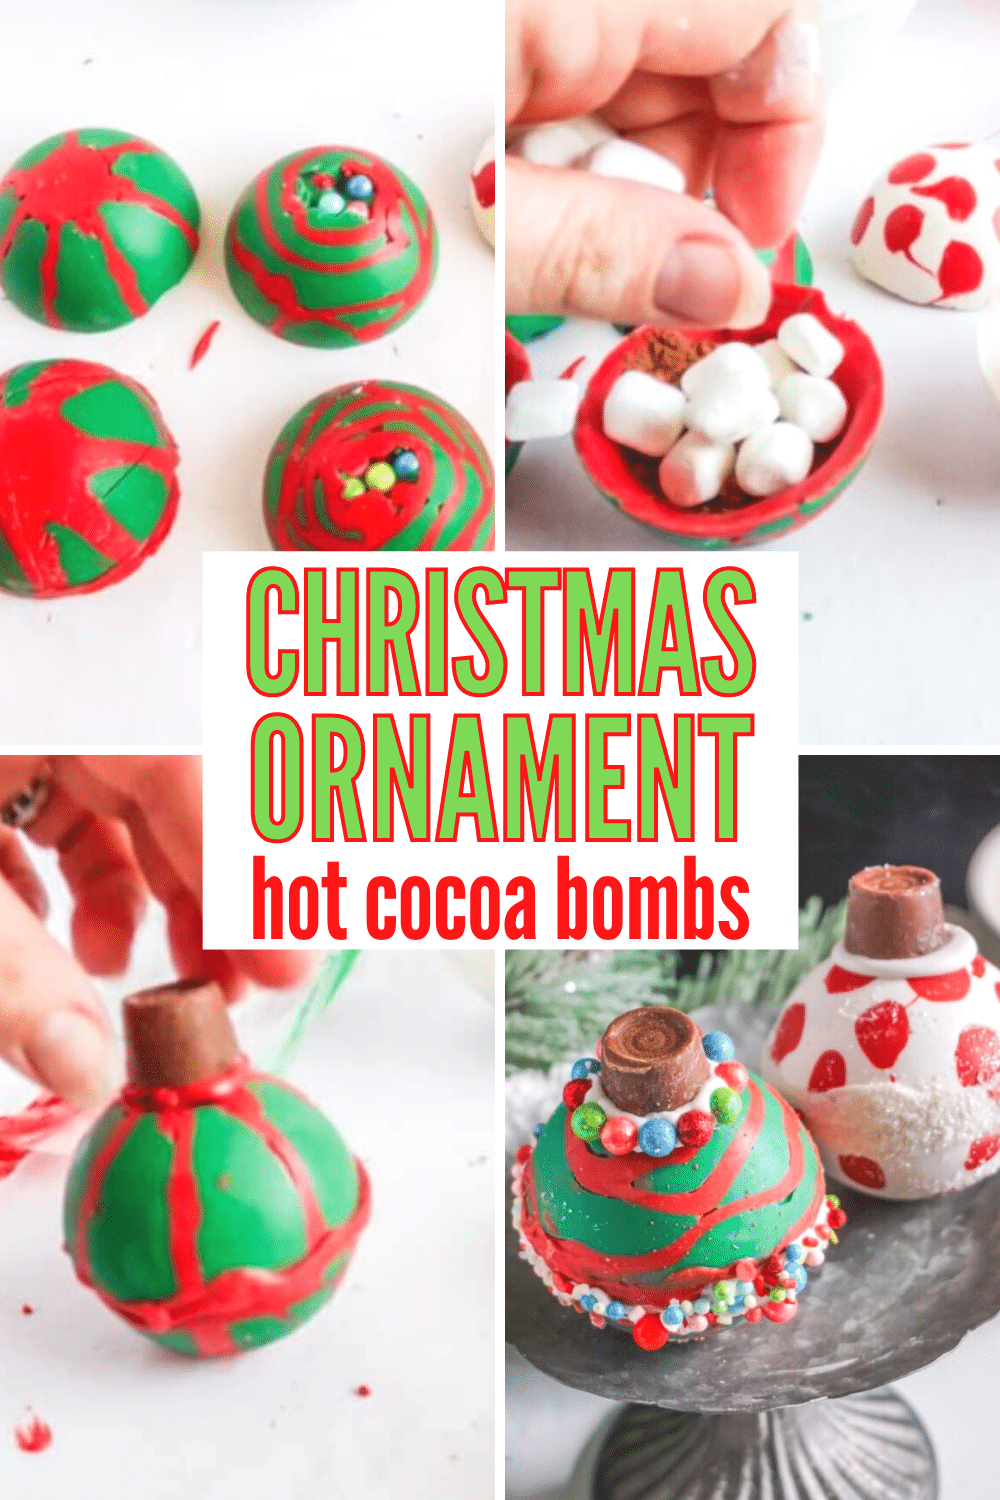 Just when you thought that the holiday season couldn't get any better, along comes these Christmas Ornament Hot Cocoa Bombs! #hotcocoabombs #hotcocoa #christmasornament #holidaytreats via @wondermomwannab